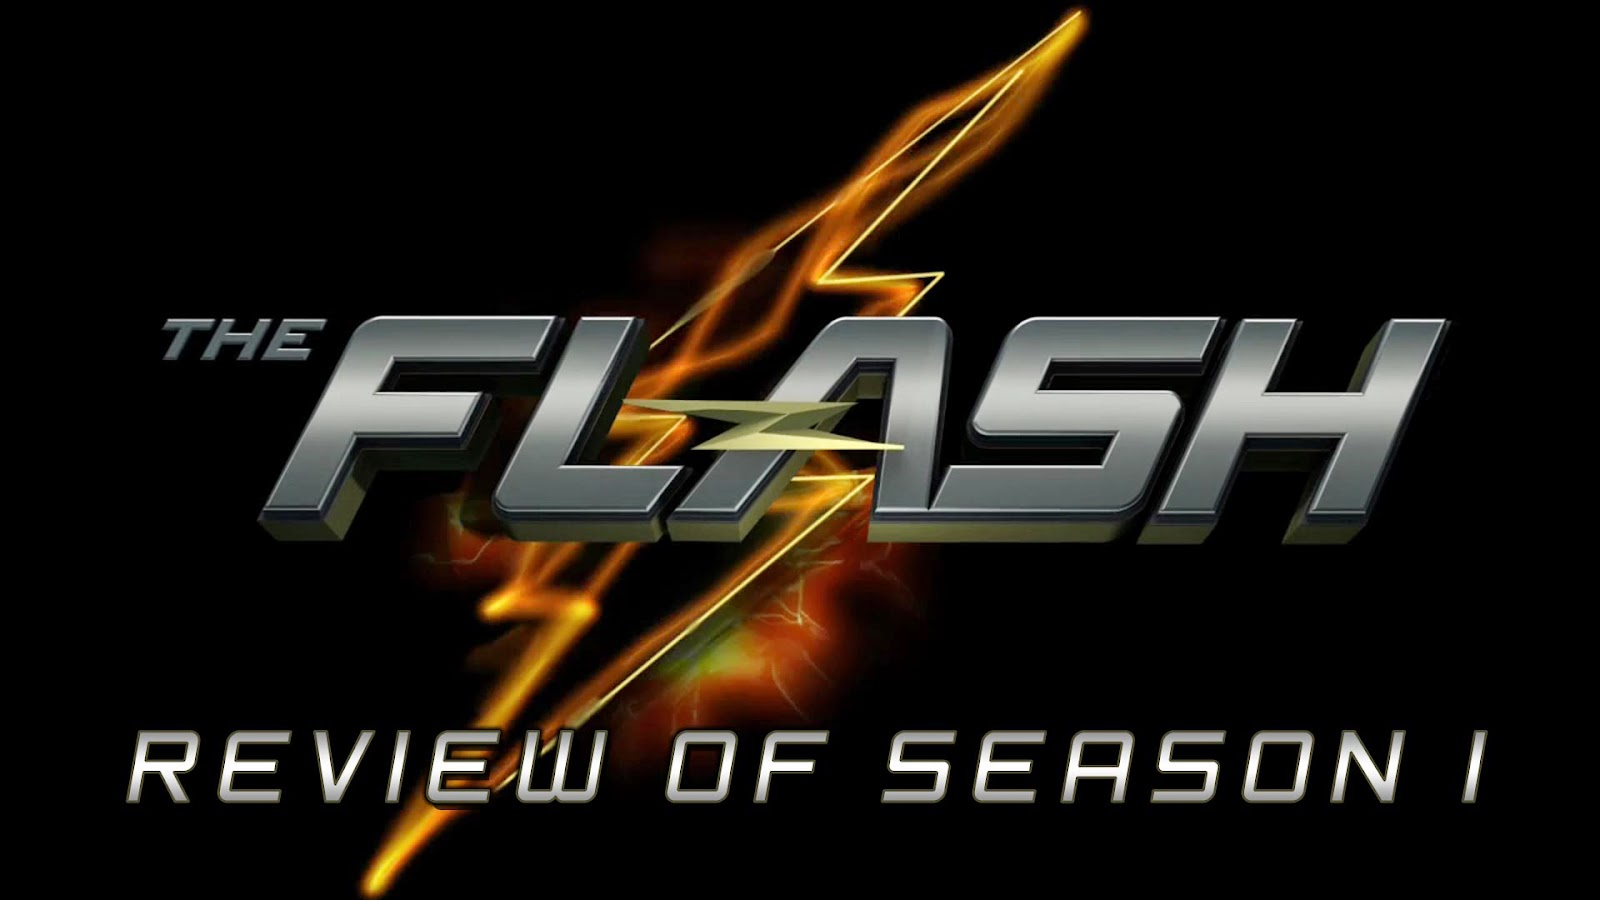 tv show review The Flash Season 1 podcast